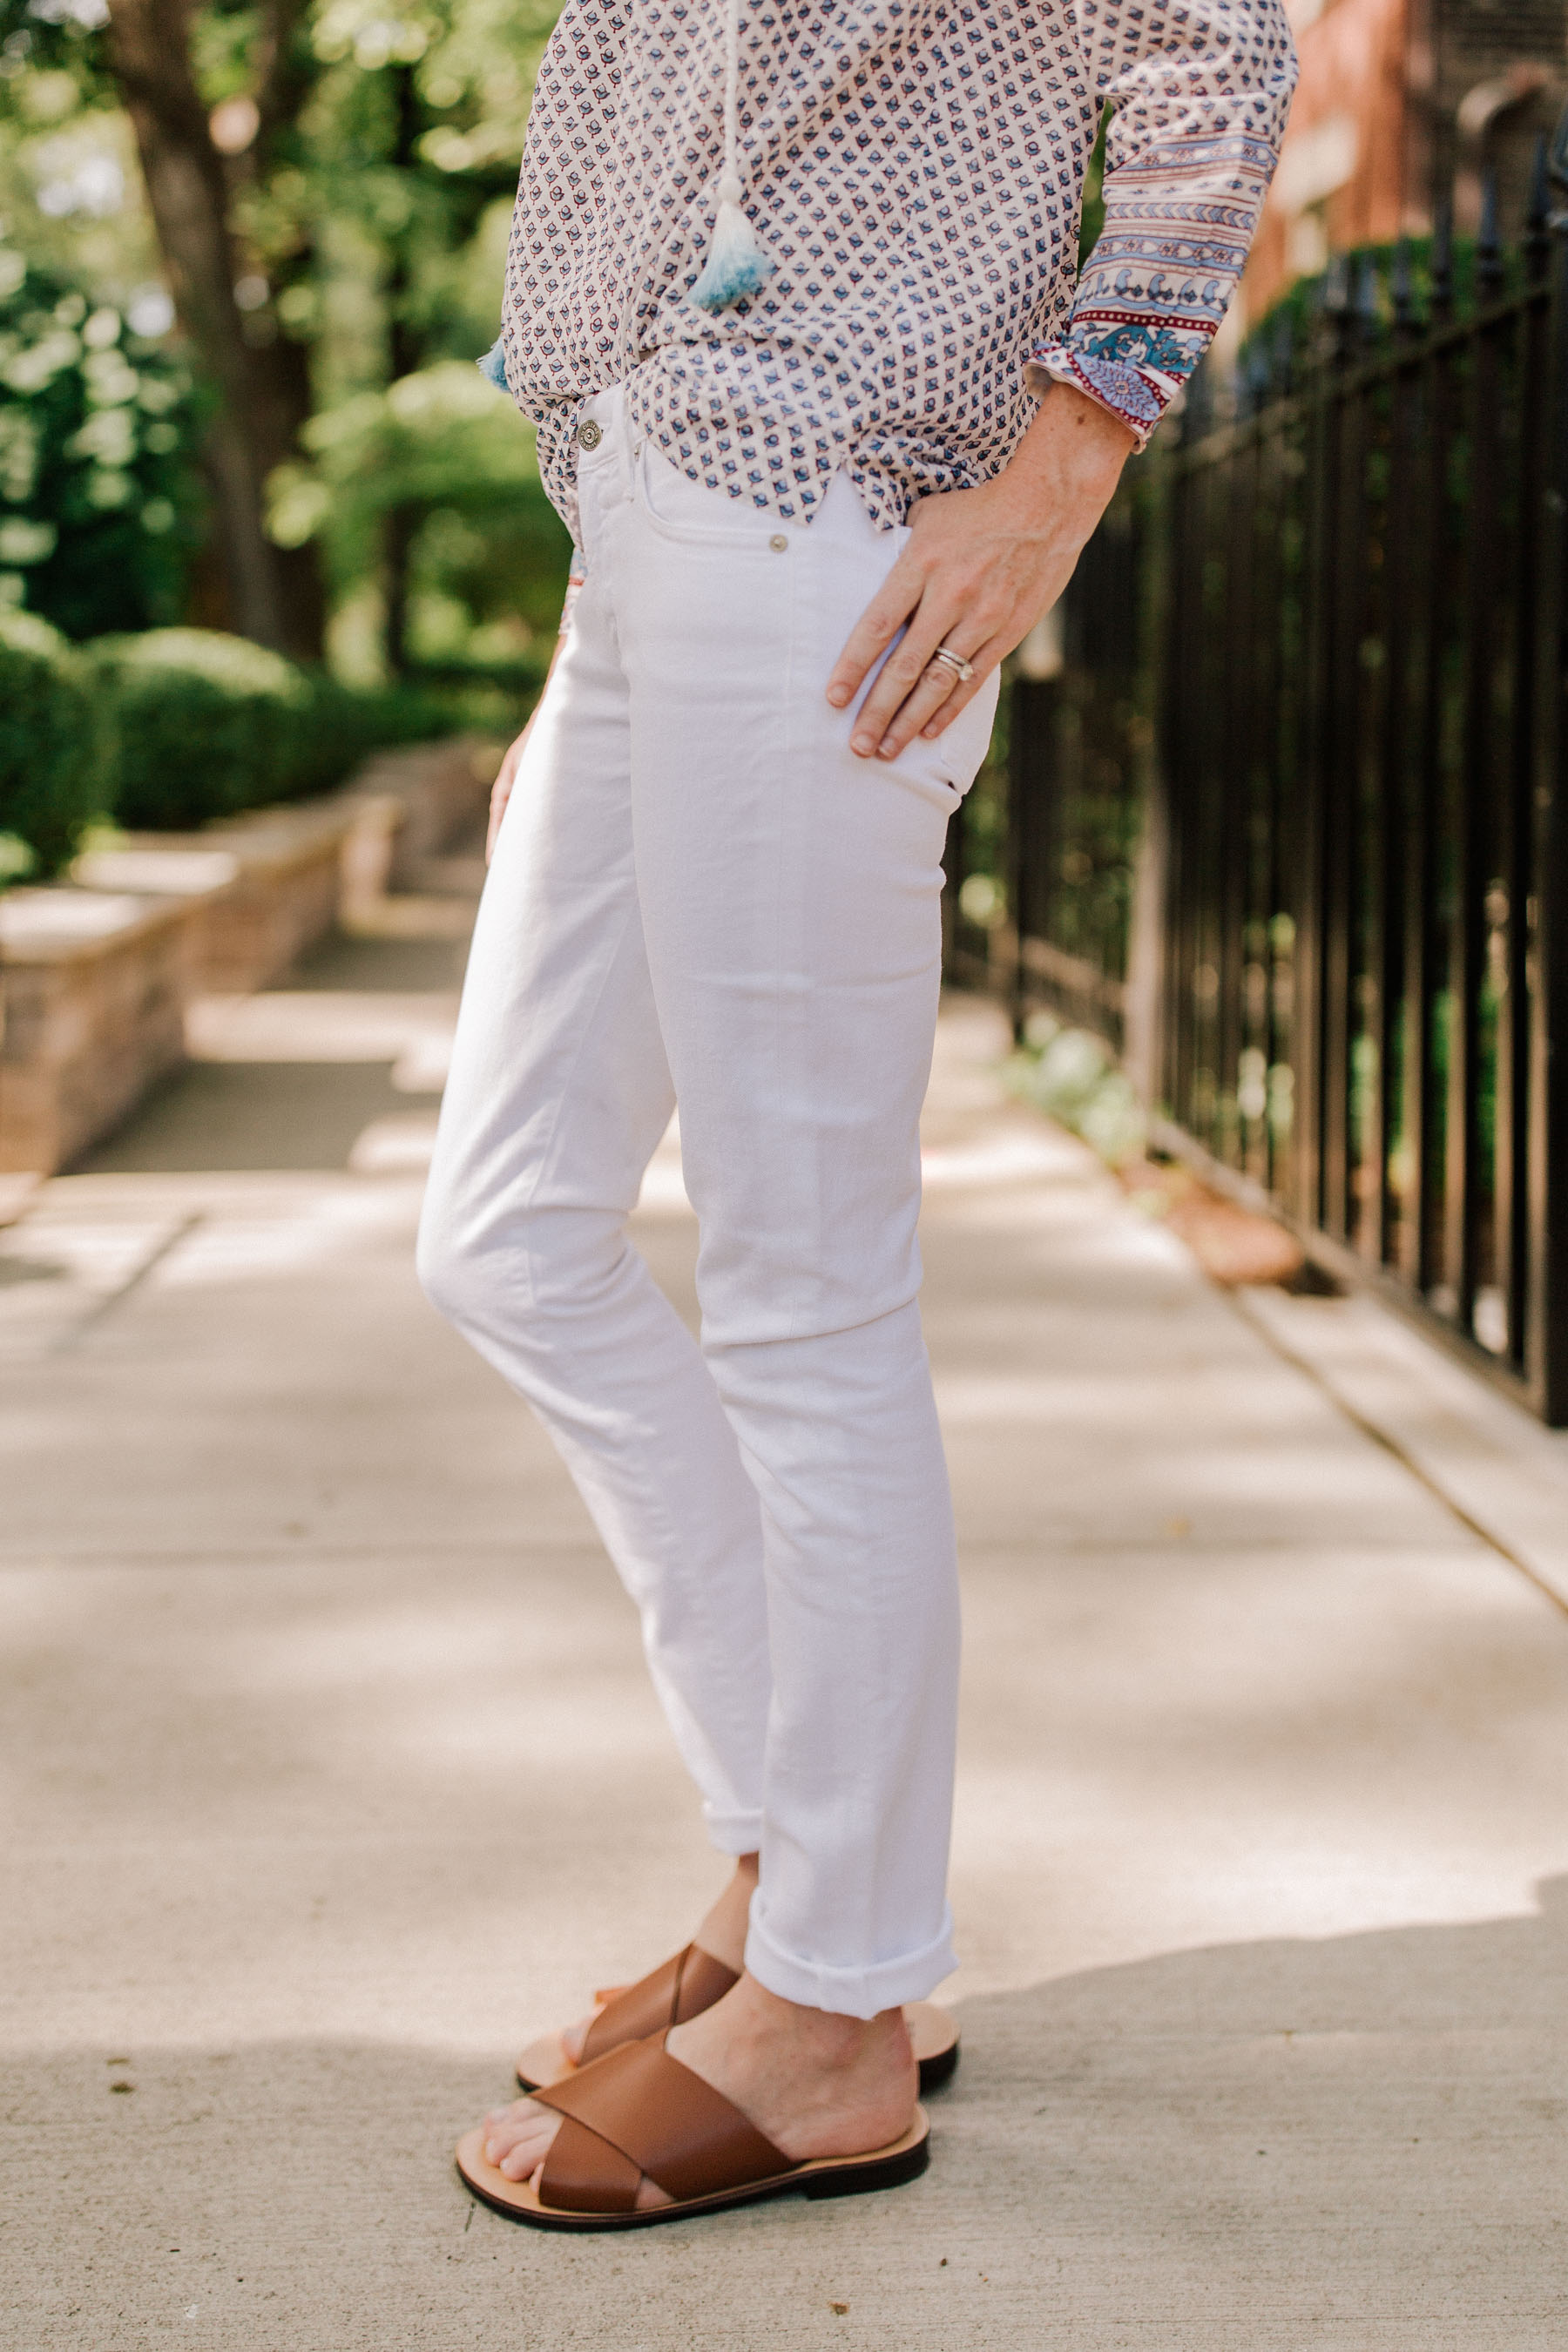 431fe192df8dba White Skinny Jeans / Brown Cross Strap Sandals - Nordstrom - Kelly in the  City · Tassel Peasant Top ...